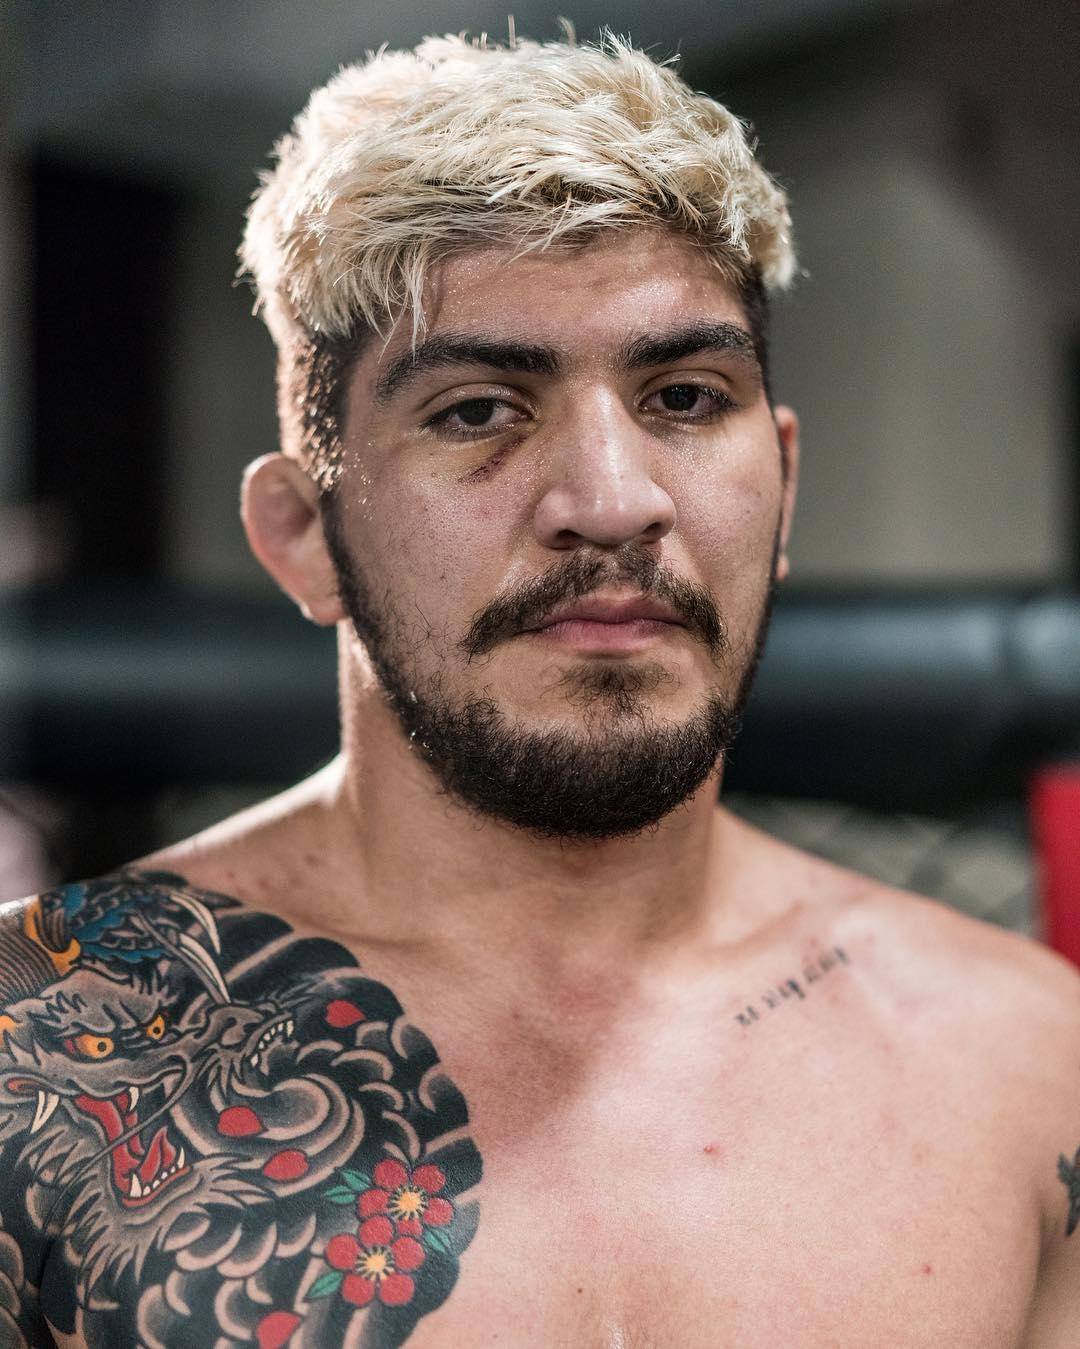 Dillon Danis is an American fighter who competes in Bellator